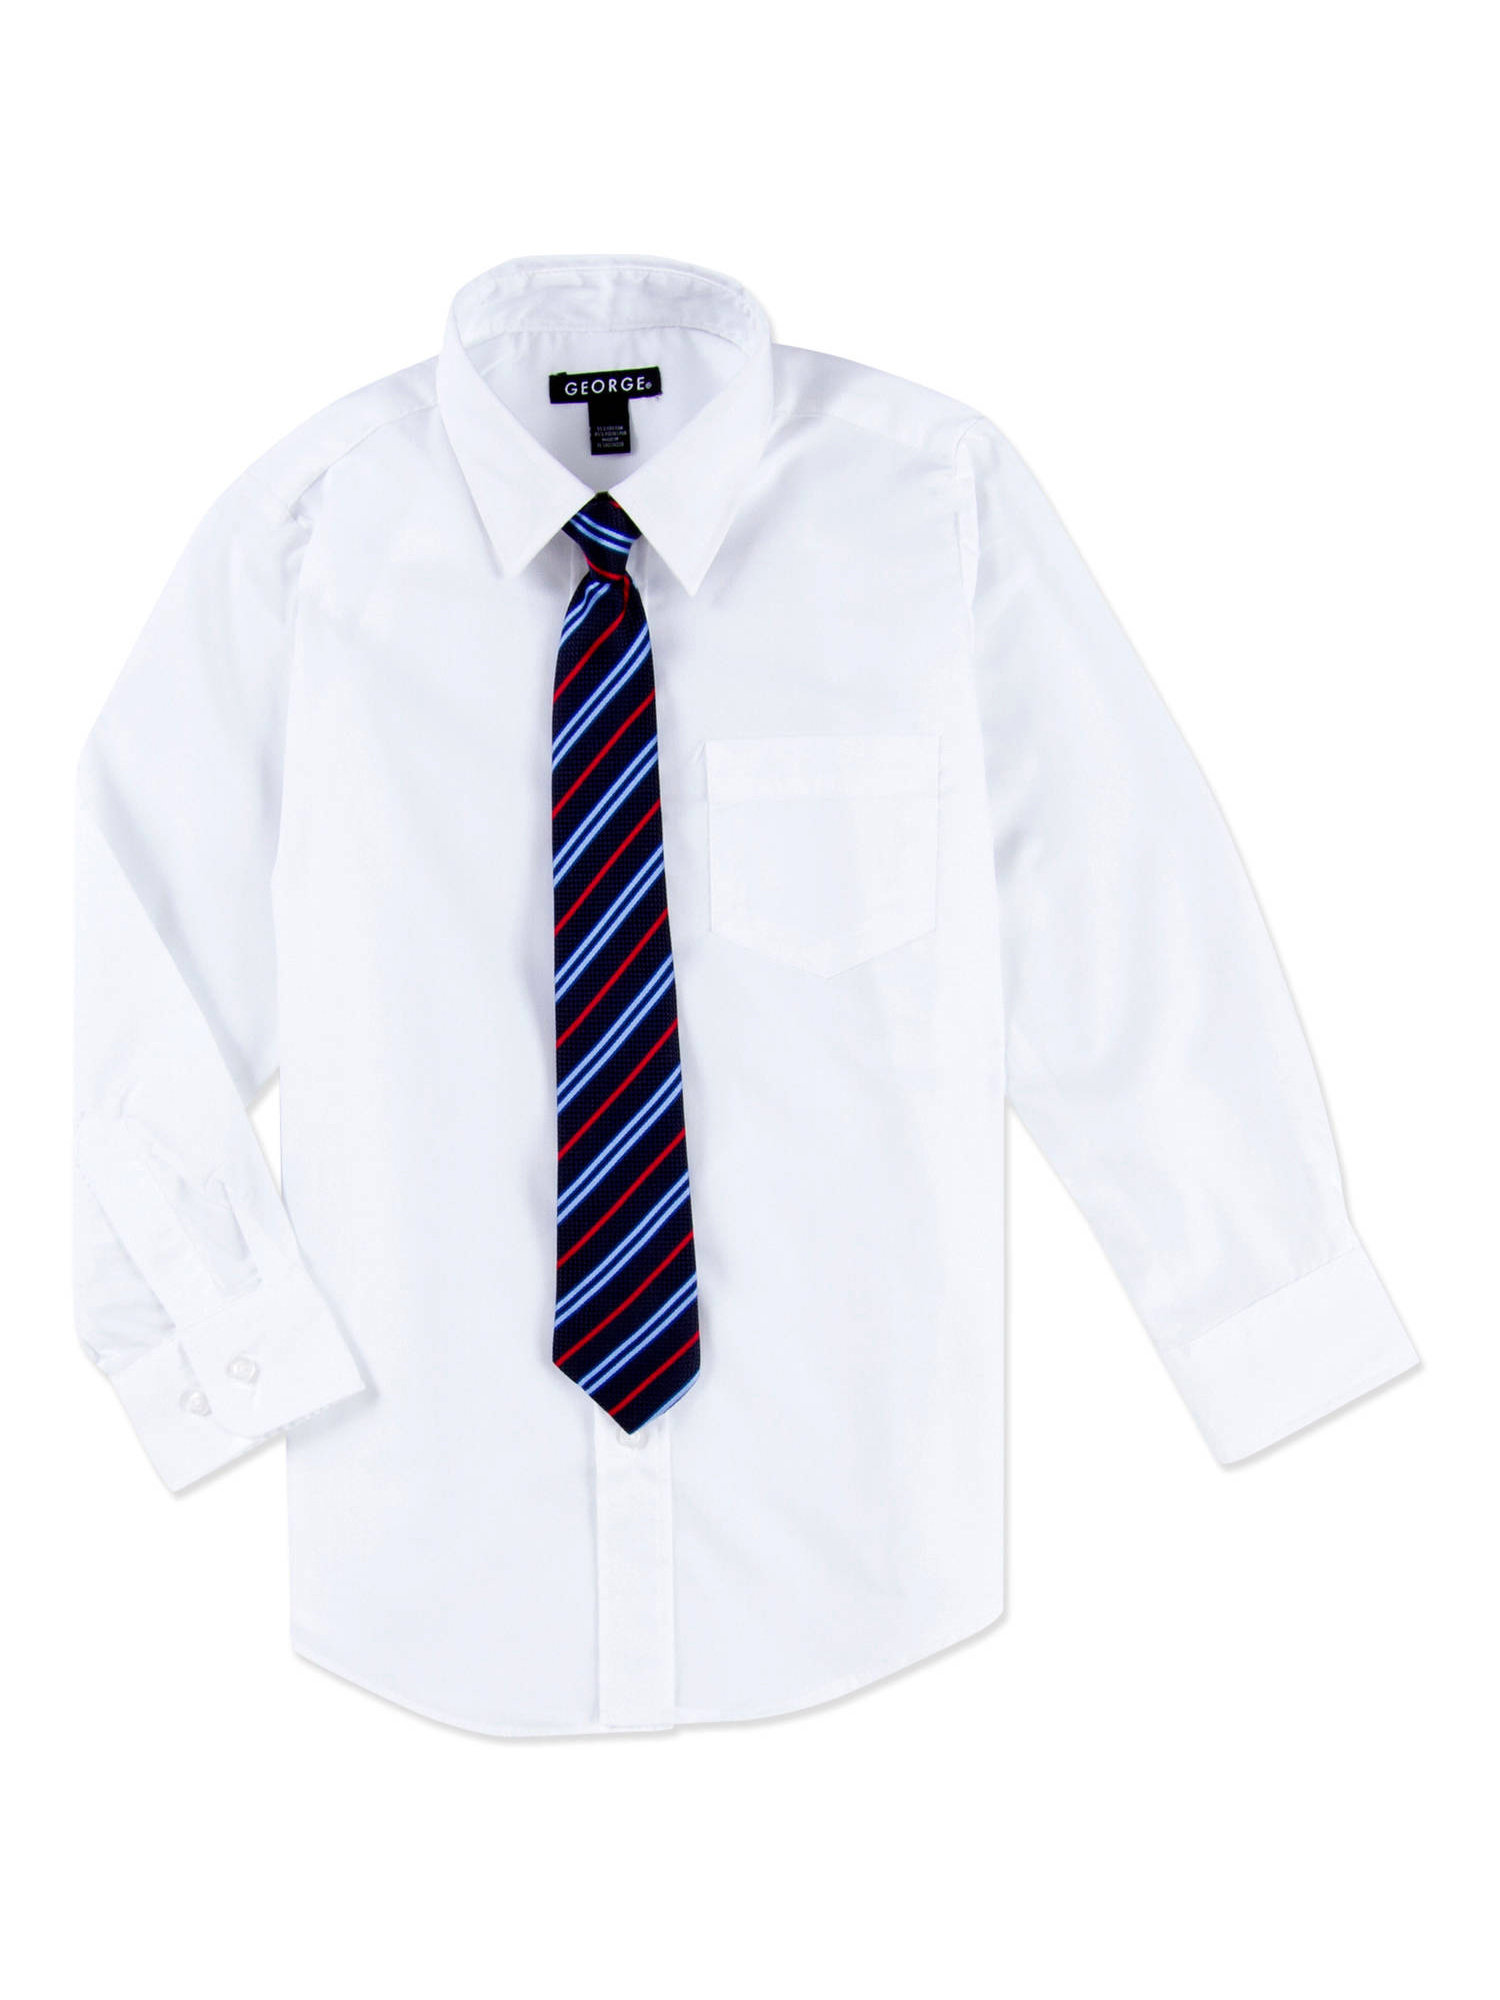 George Boys Packaged Dress Shirt-Tie Husky